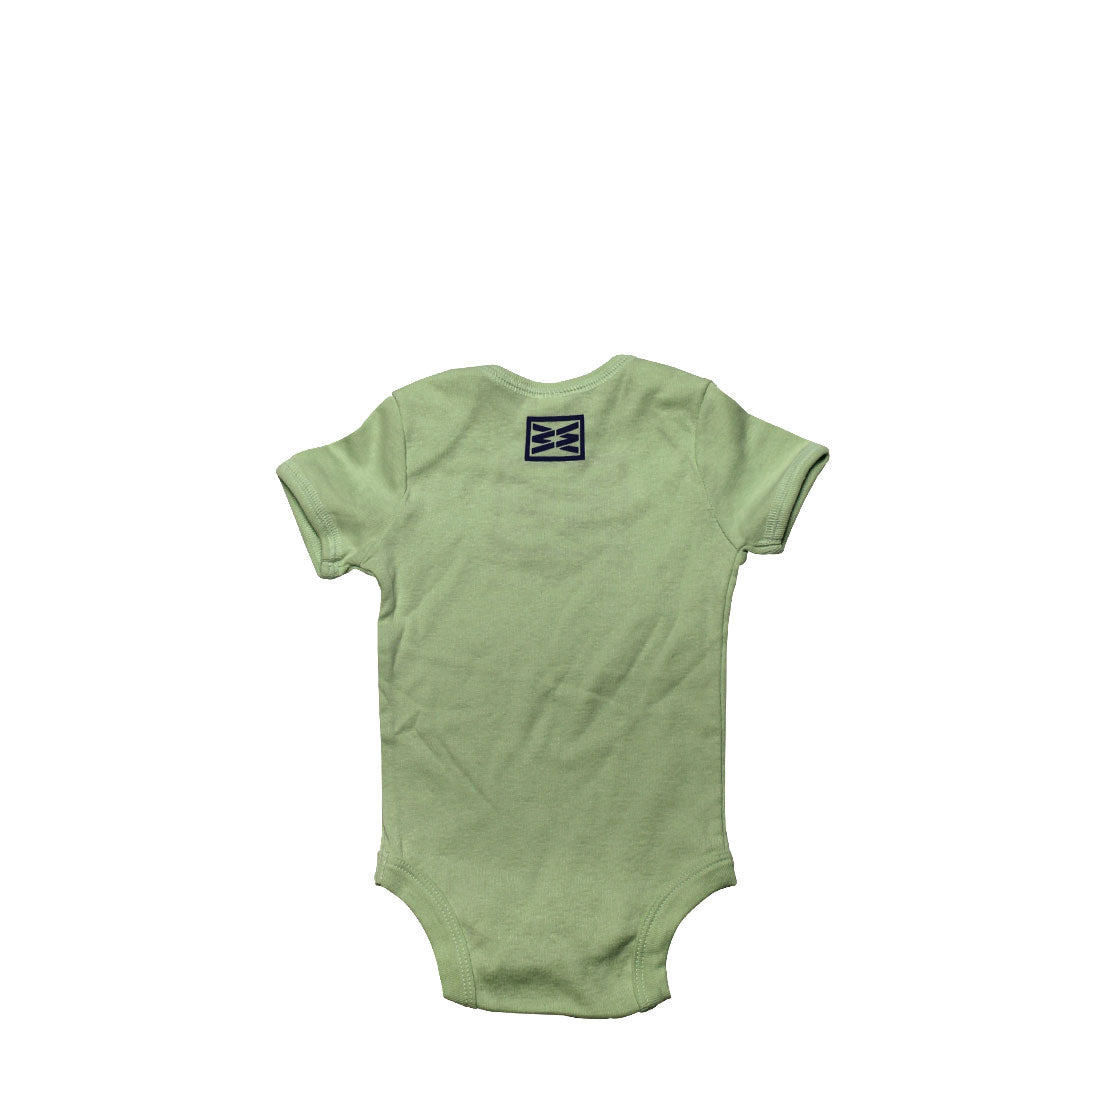 BLOCK BABY ONESIE IN PALE GREEN BLACK INK